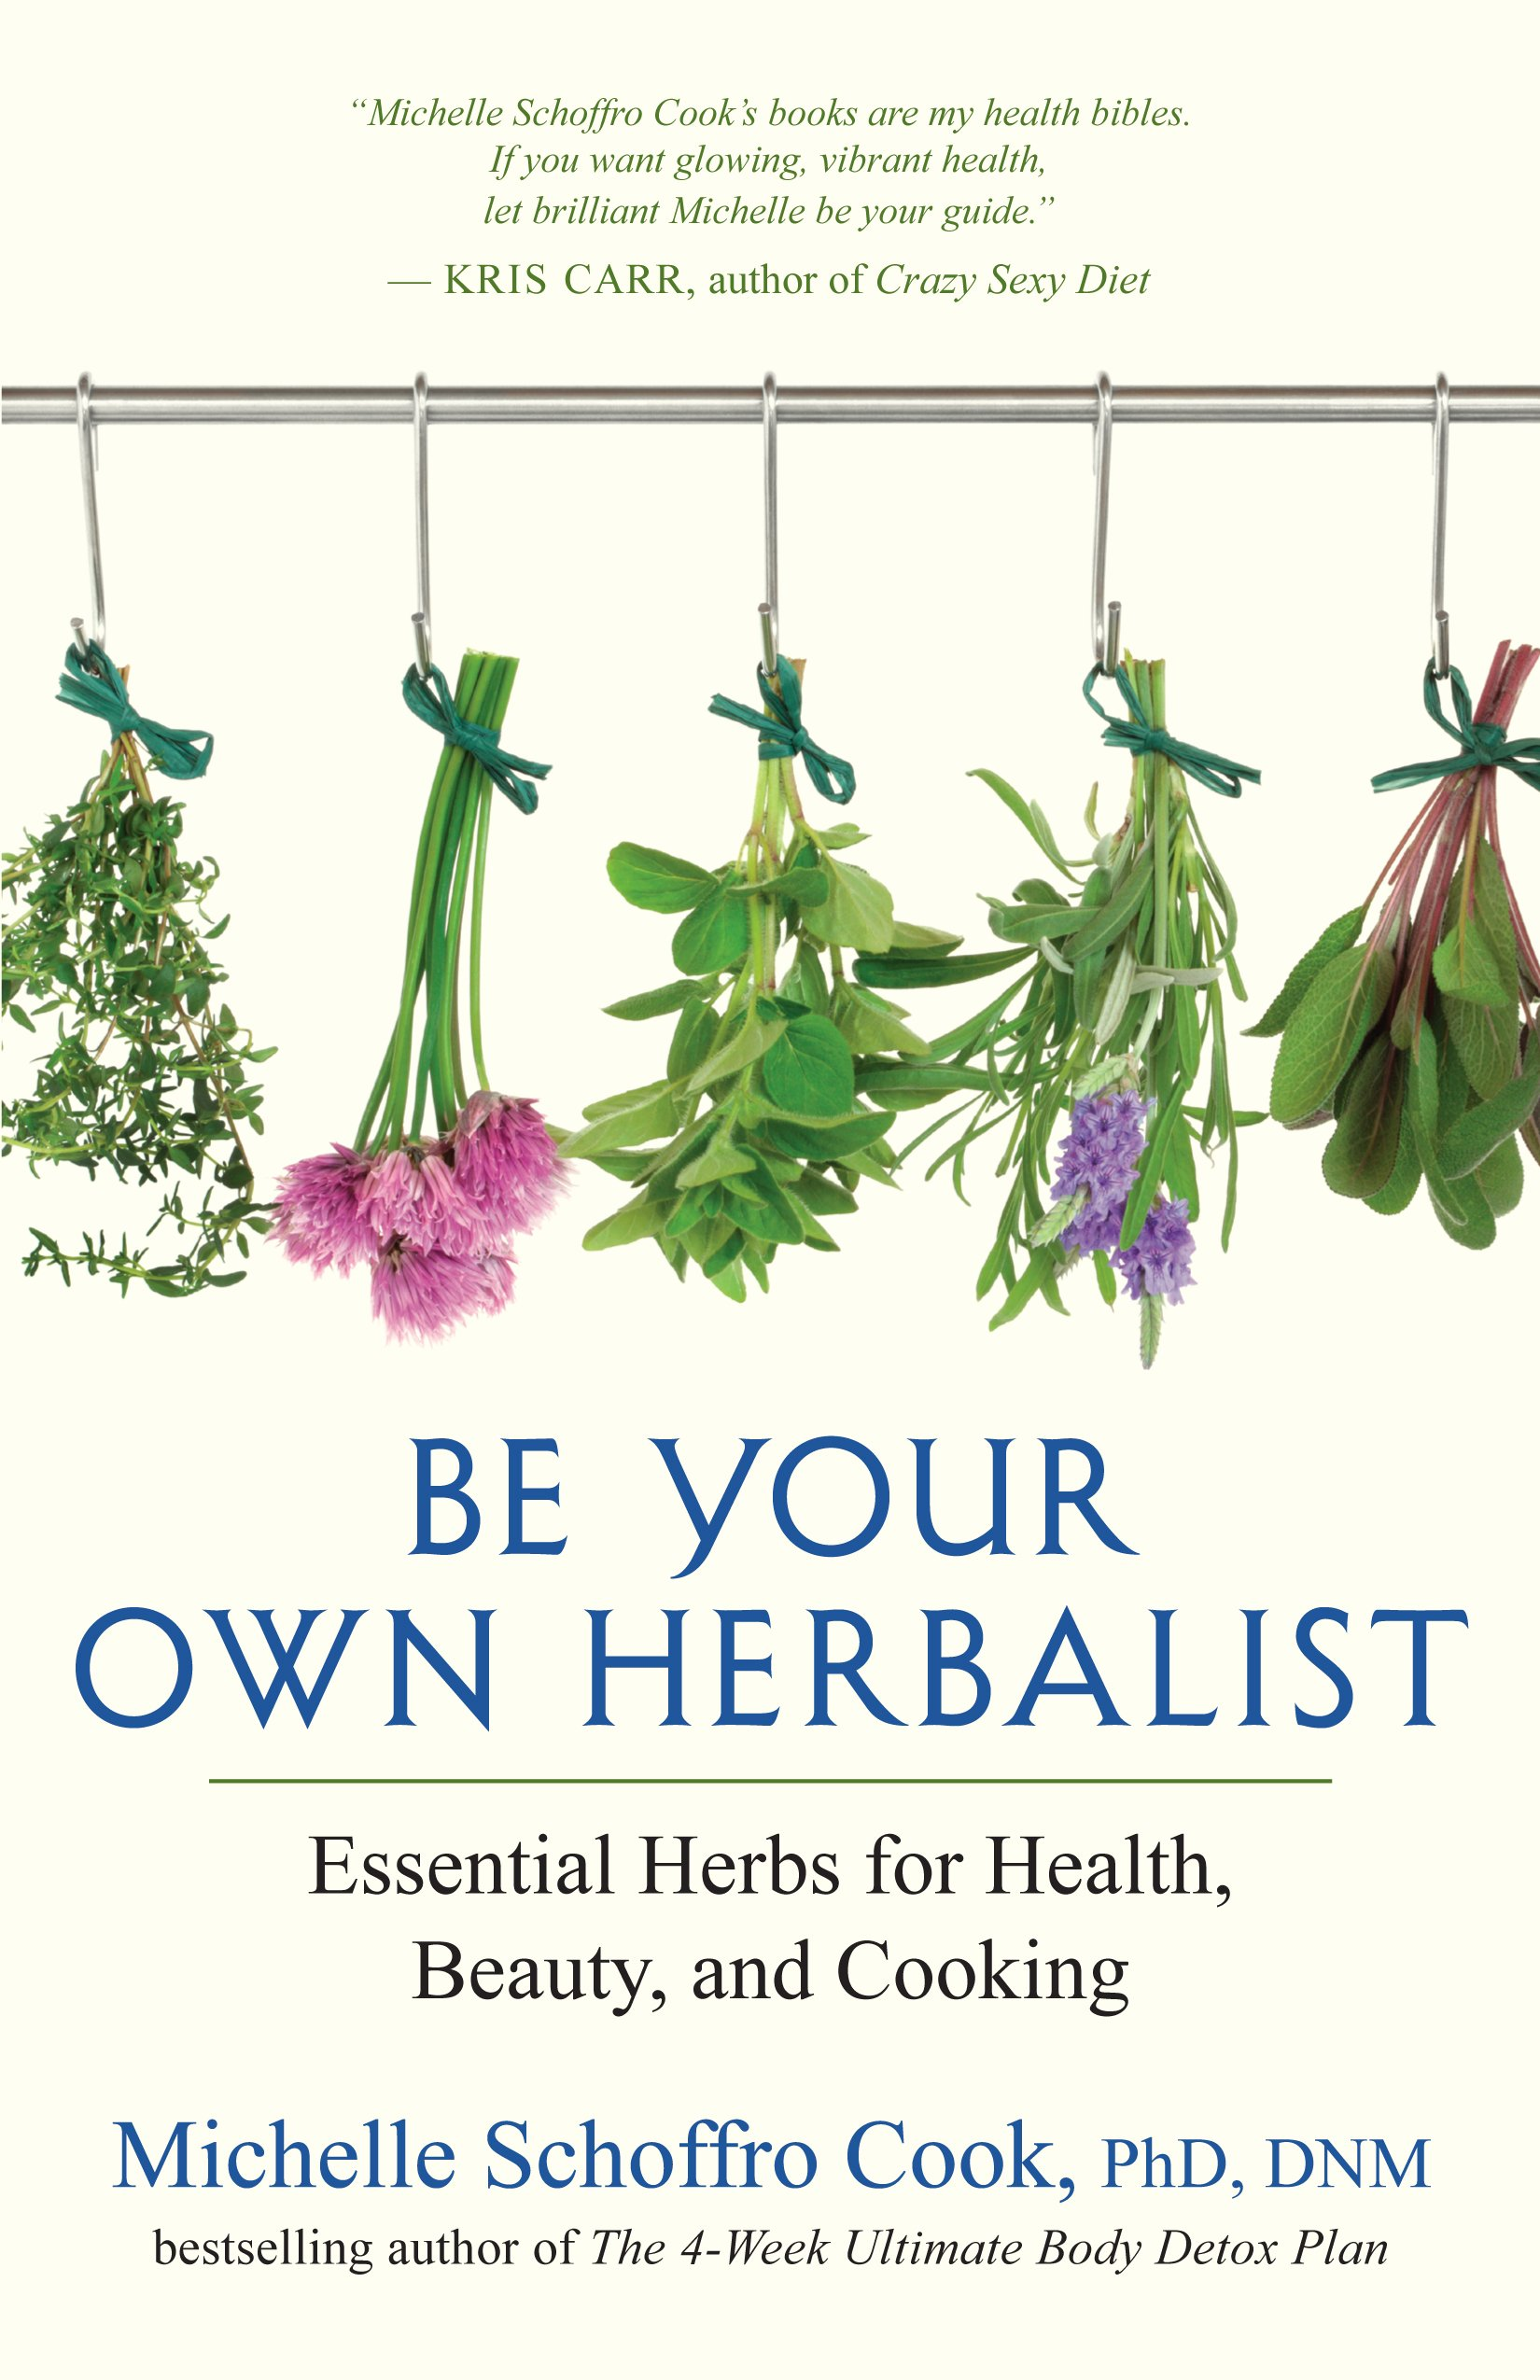 Essential My Health : essential, health, Herbalist:, Essential, Herbs, Health,, Beauty,, Cooking, Francisco, Review